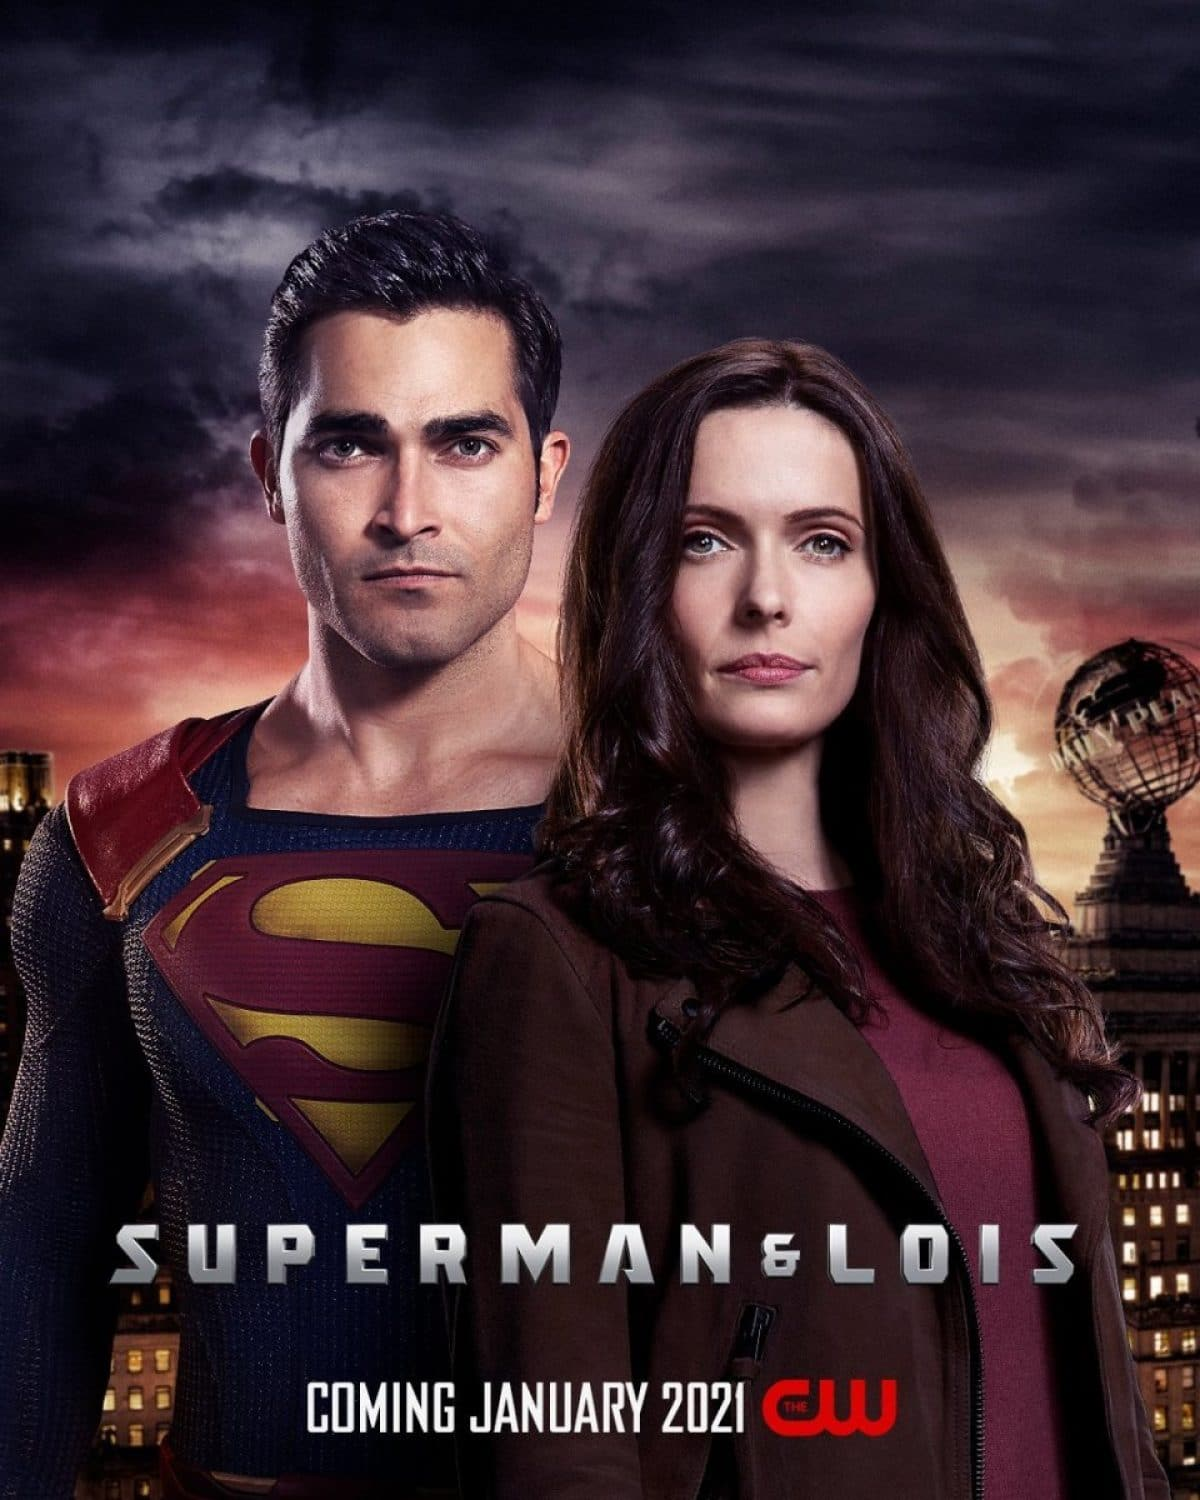 Superman & Lois gets a series premiere date and first poster 21